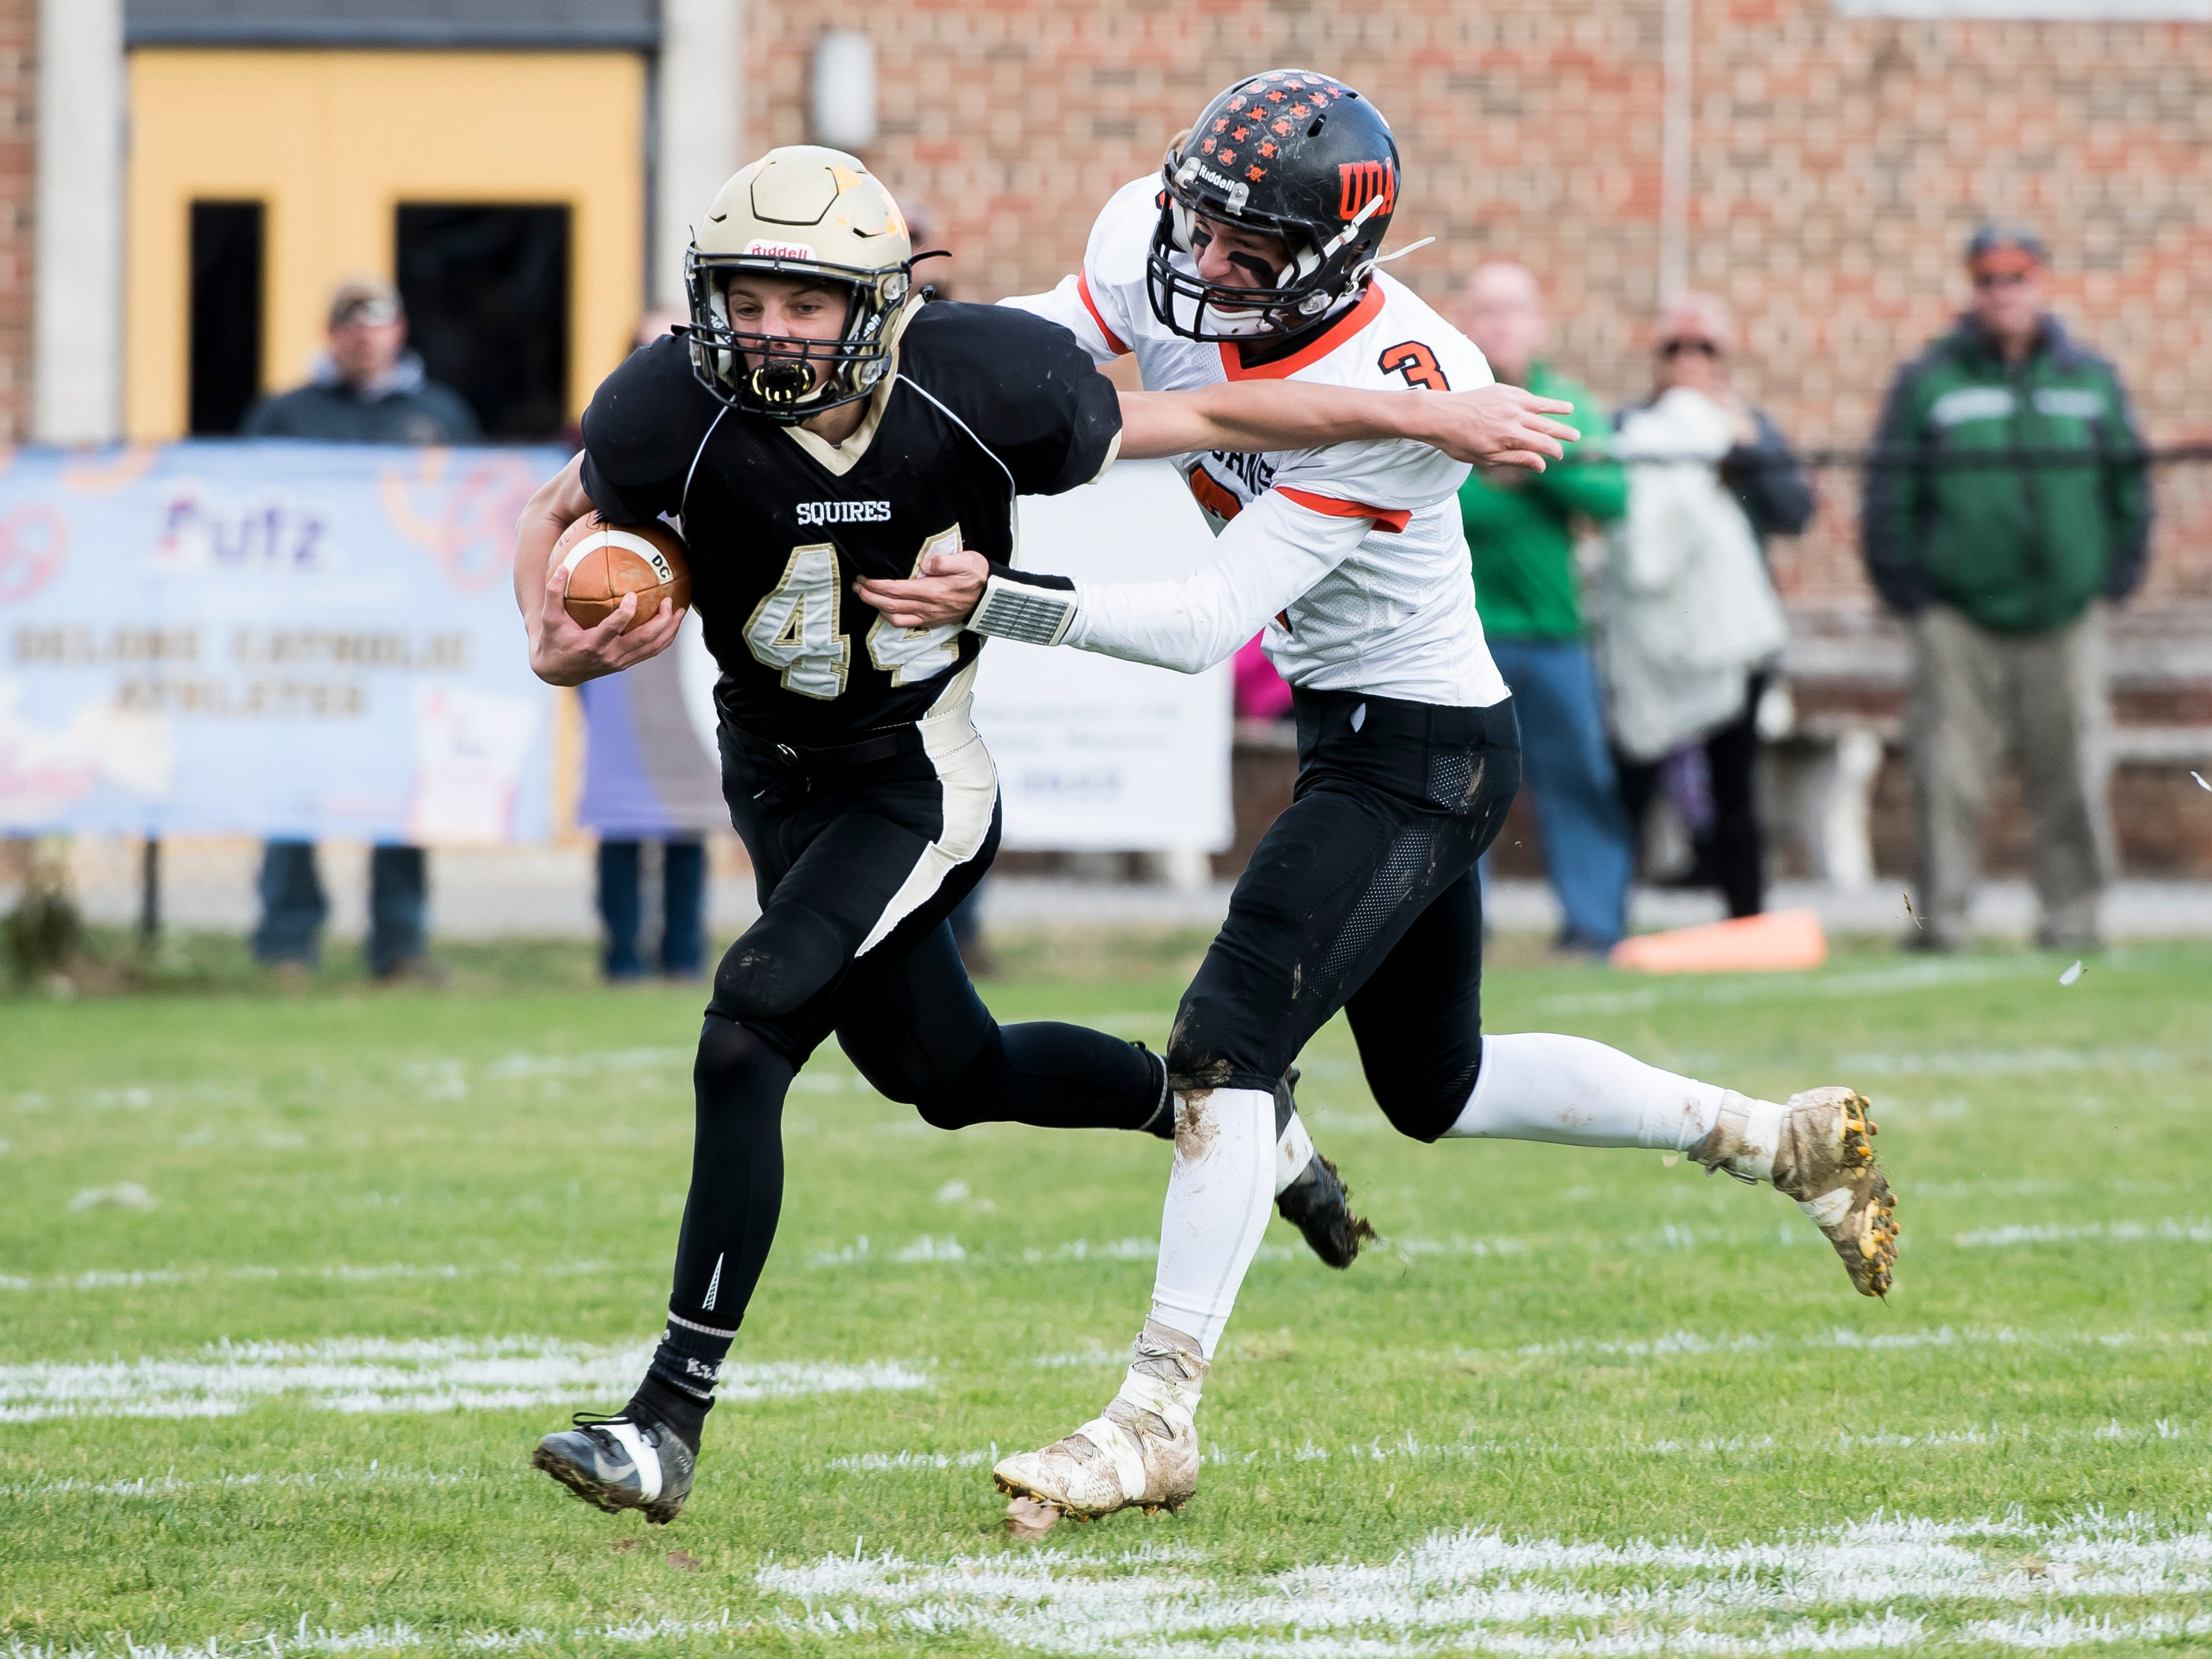 Delone Catholic's AJ Knobloch runs the ball against Upper Dauphin during a District III Class 2A semifinal game on Saturday, November 3, 2018. The Squires won 48-23.